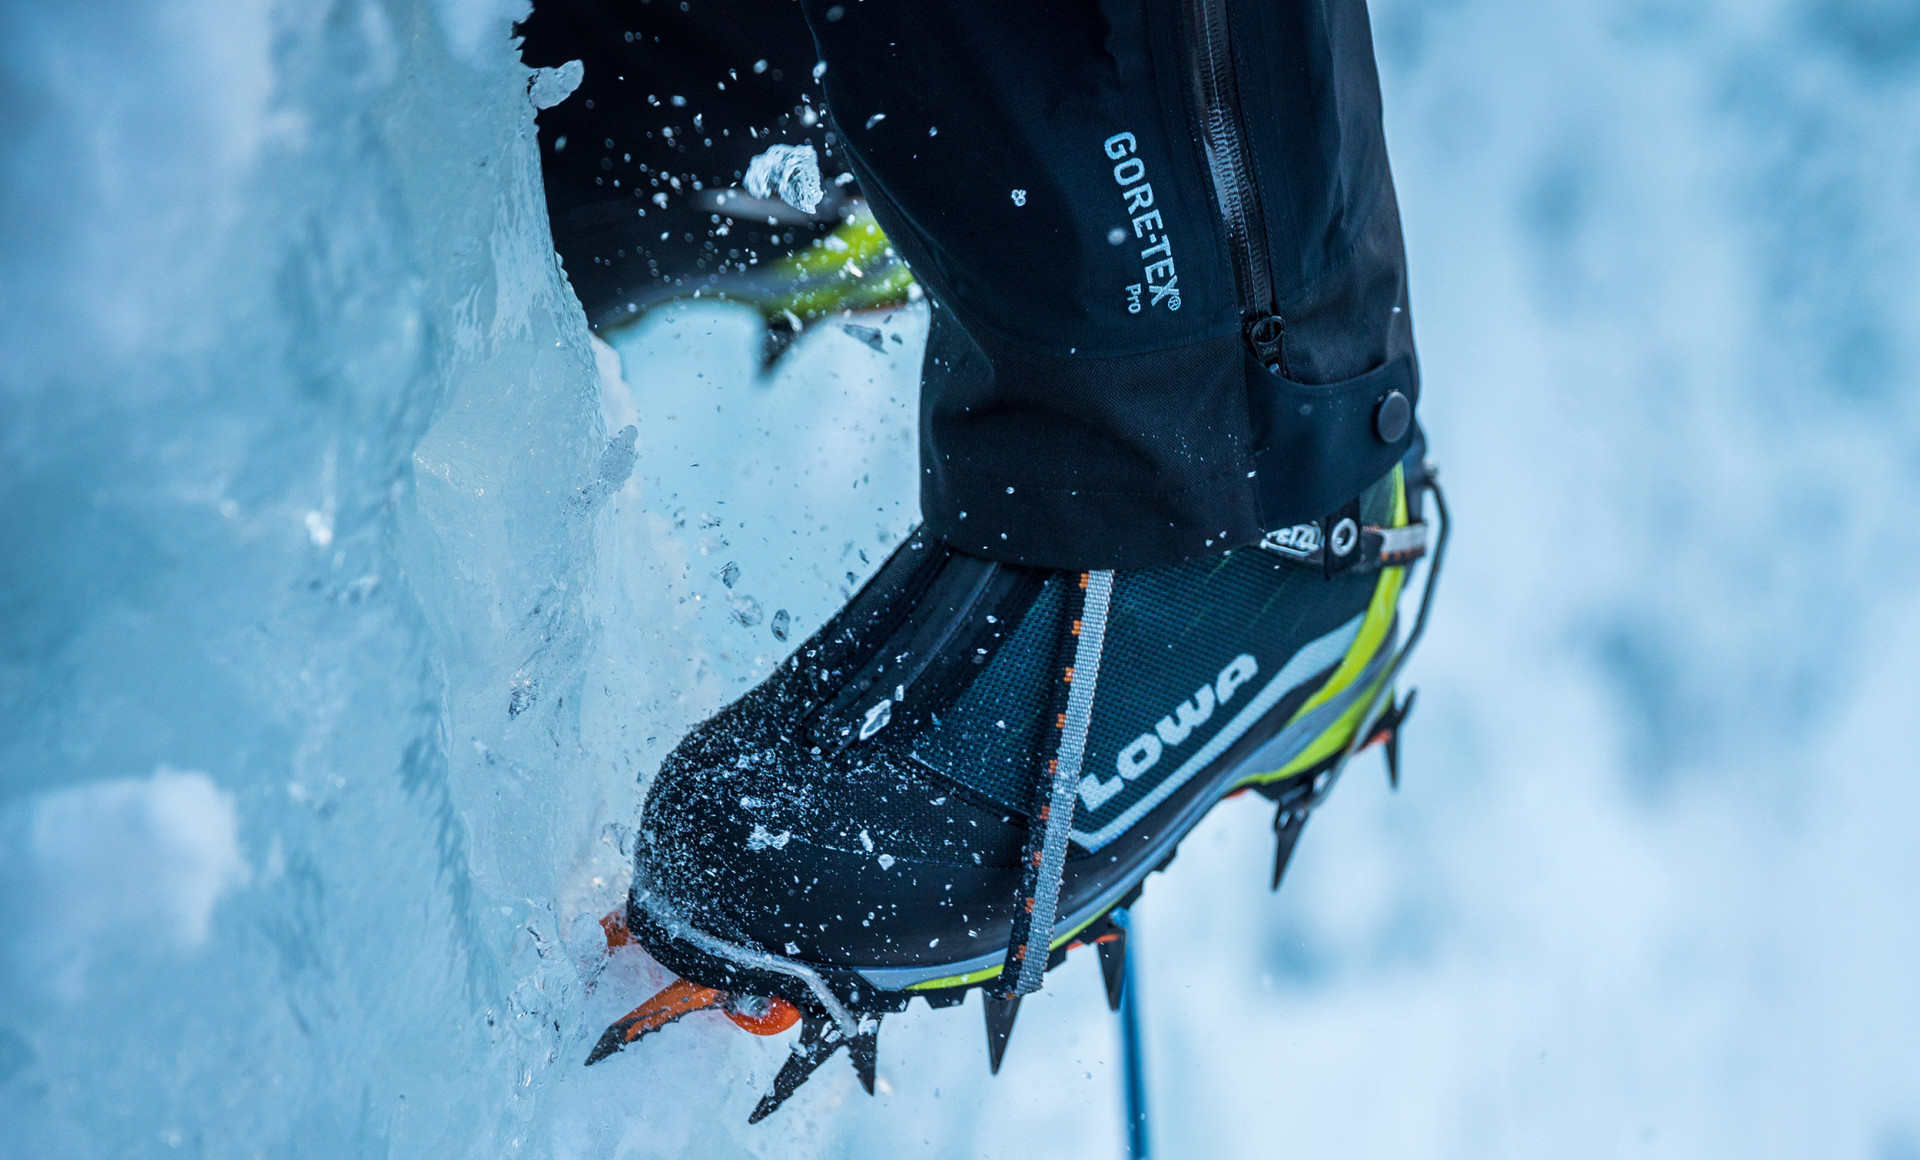 The Ice Rocket is actually the best choice for such walls of ice. But, as you see here, the Alpine Ice GTX does just fine as well.